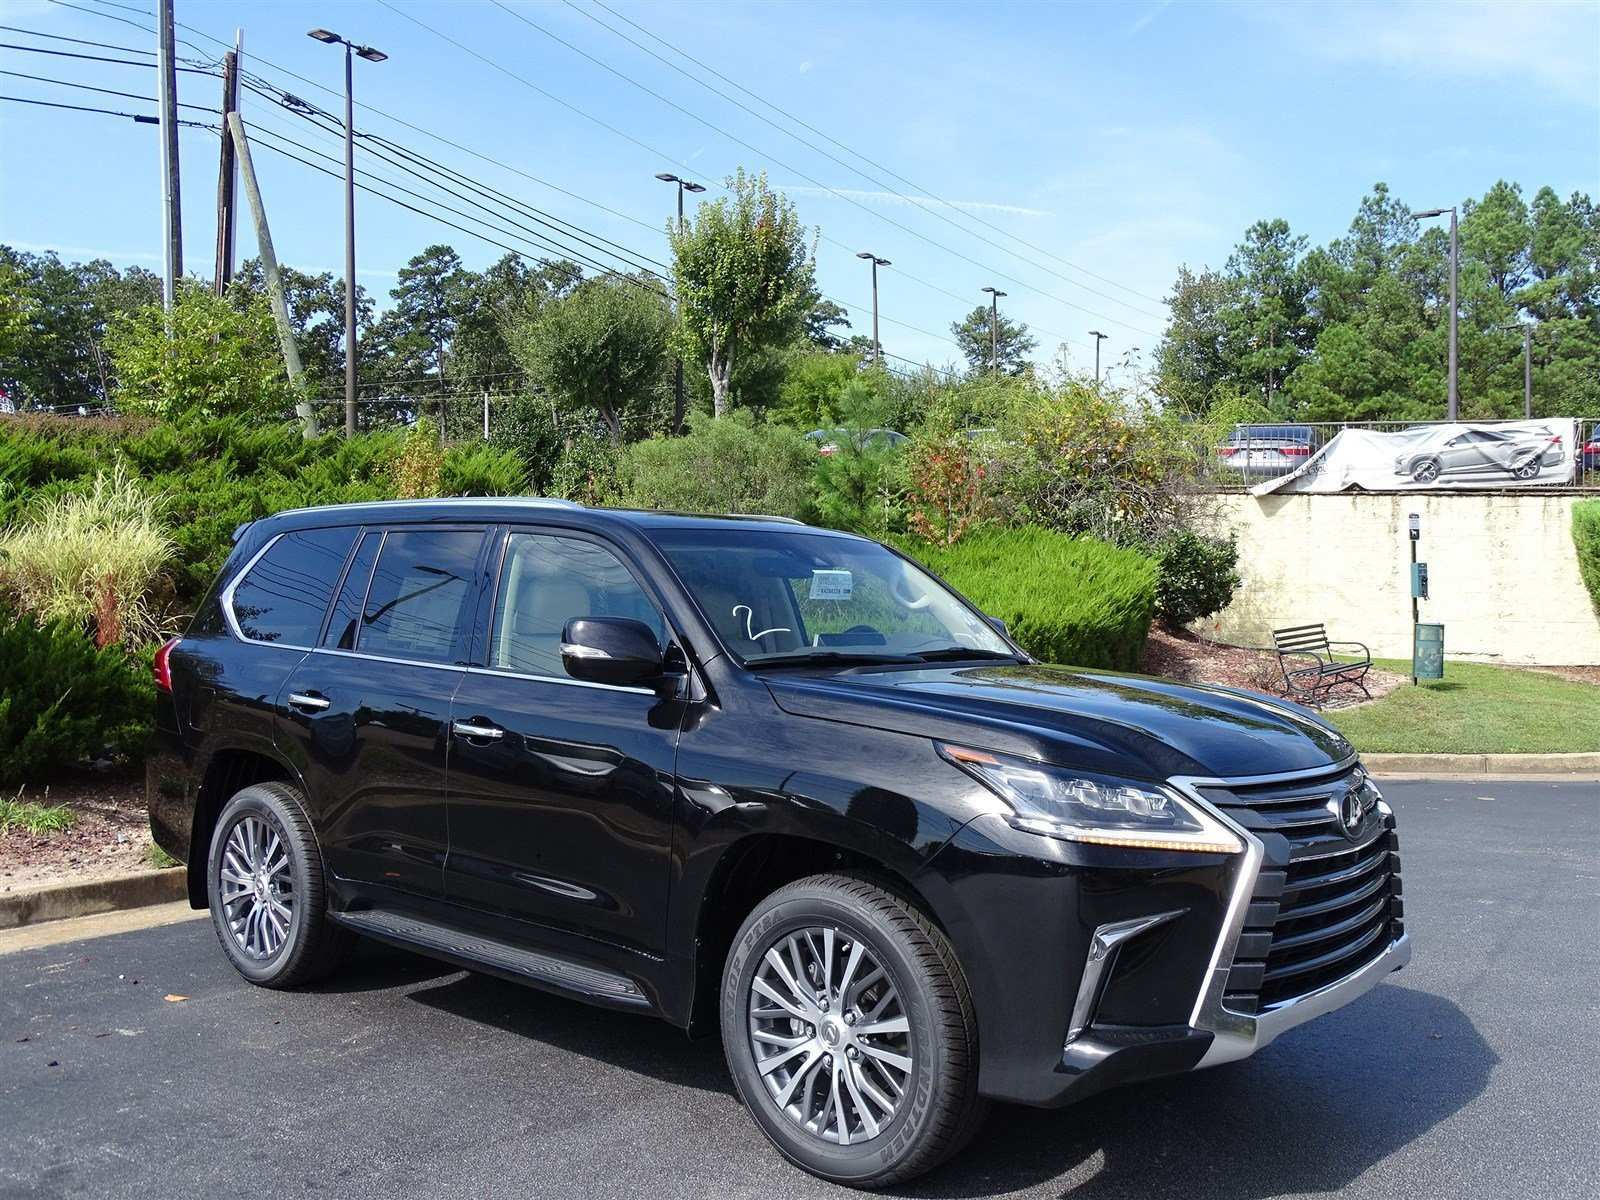 42 New 2020 Lexus GX 460 Price